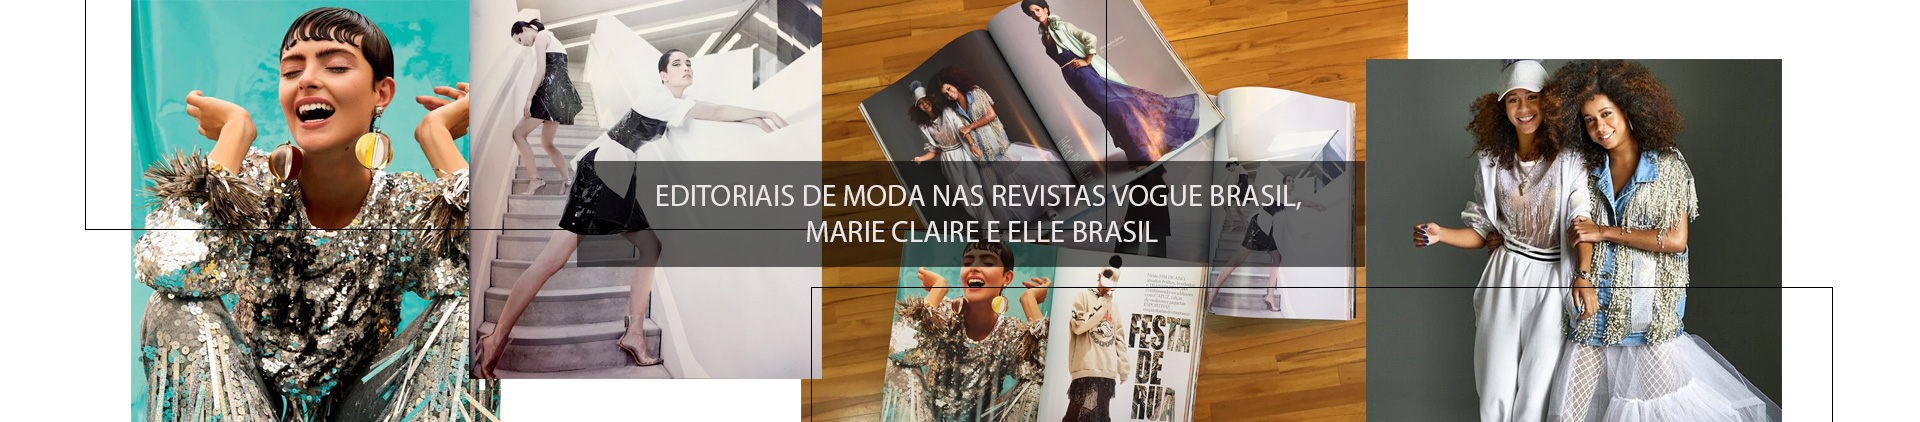 #PRESS: EDITORIAIS DE MODA NAS REVISTAS VOGUE BRASIL, MARIE CLAIRE E ELLE BRASIL